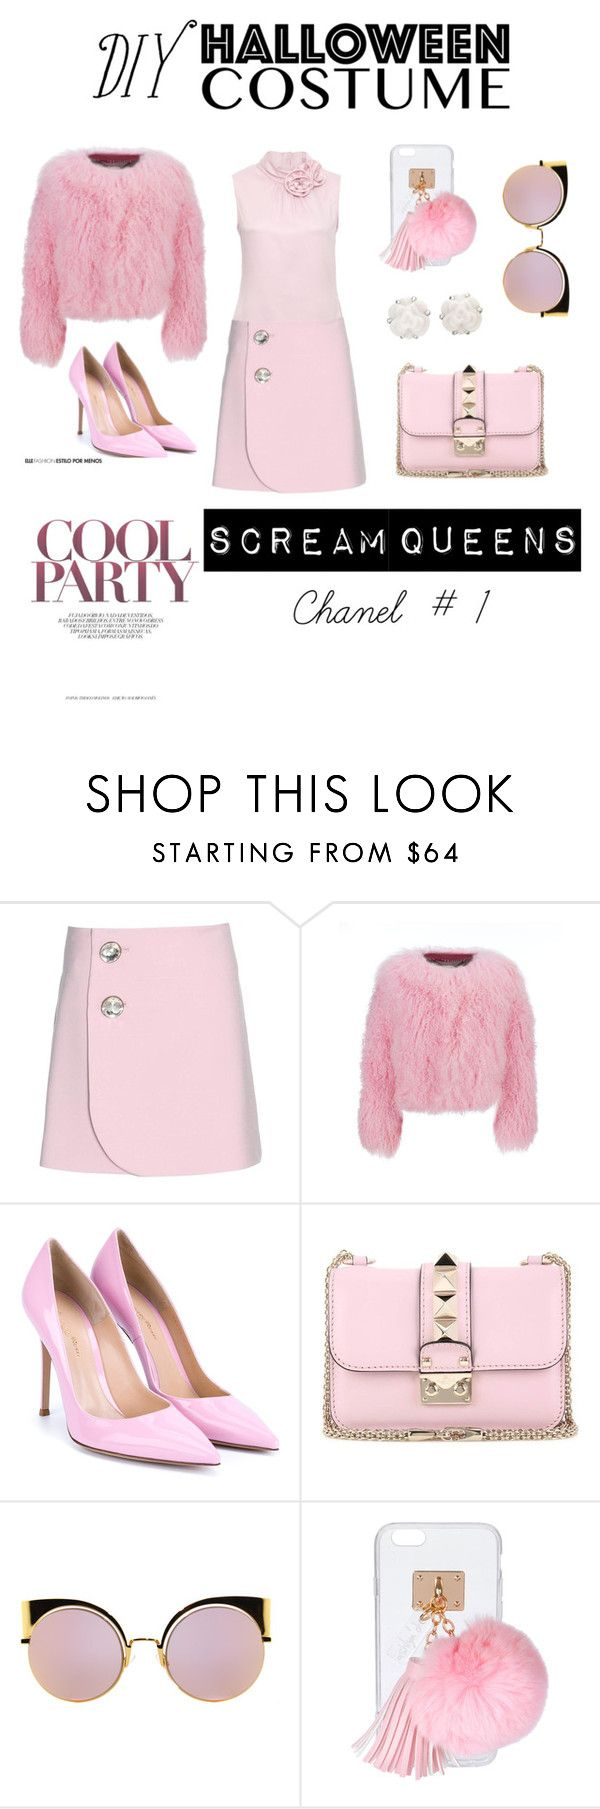 """Baby Pink X Chanel"" by assylajean ❤ liked on Polyvore featuring Marni, Charlotte Simone, Gianvito Rossi, Valentino, Fendi, Ashlyn'd, Chanel, halloweencostume and DIYHalloween"